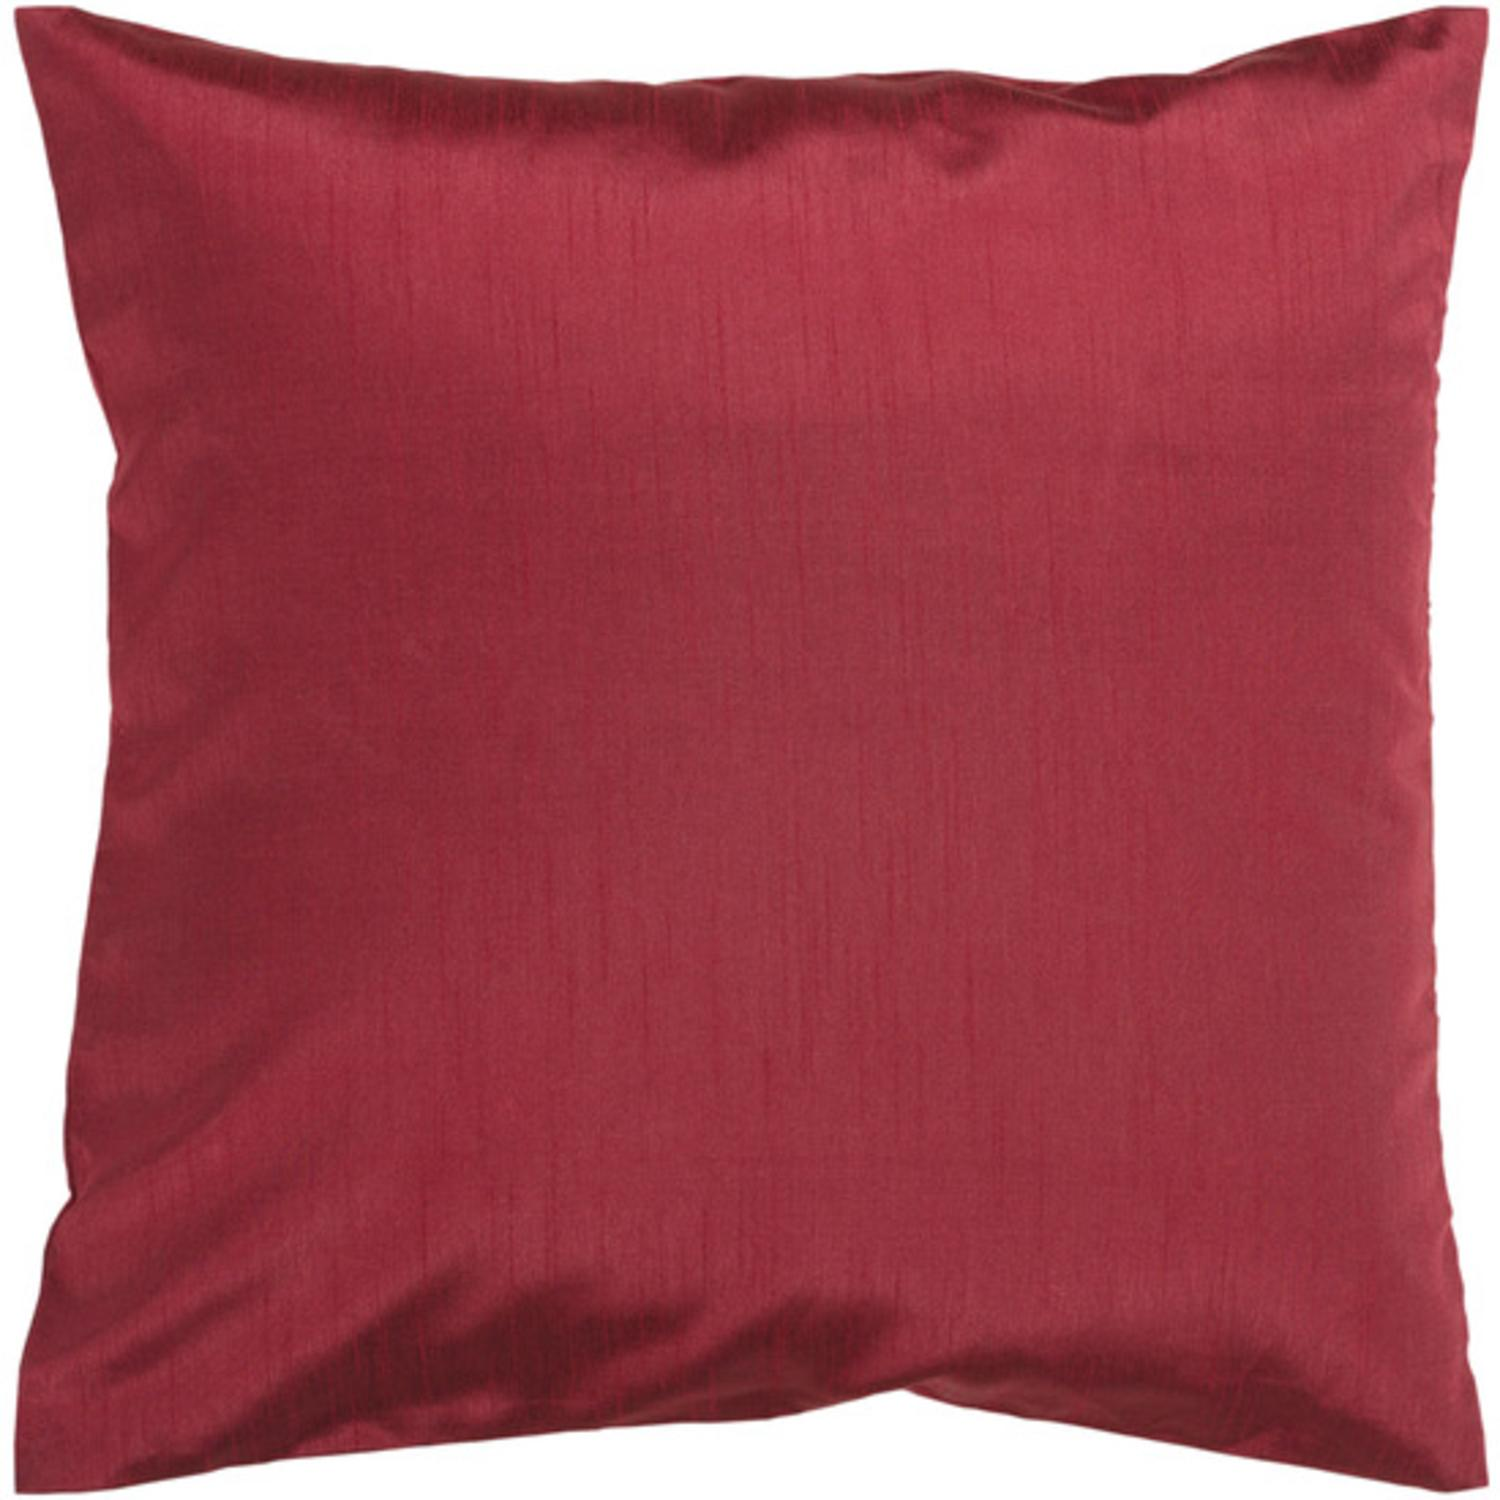 """18"""" Shiny Solid Lipstick Red Decorative Down Throw Pillow"""